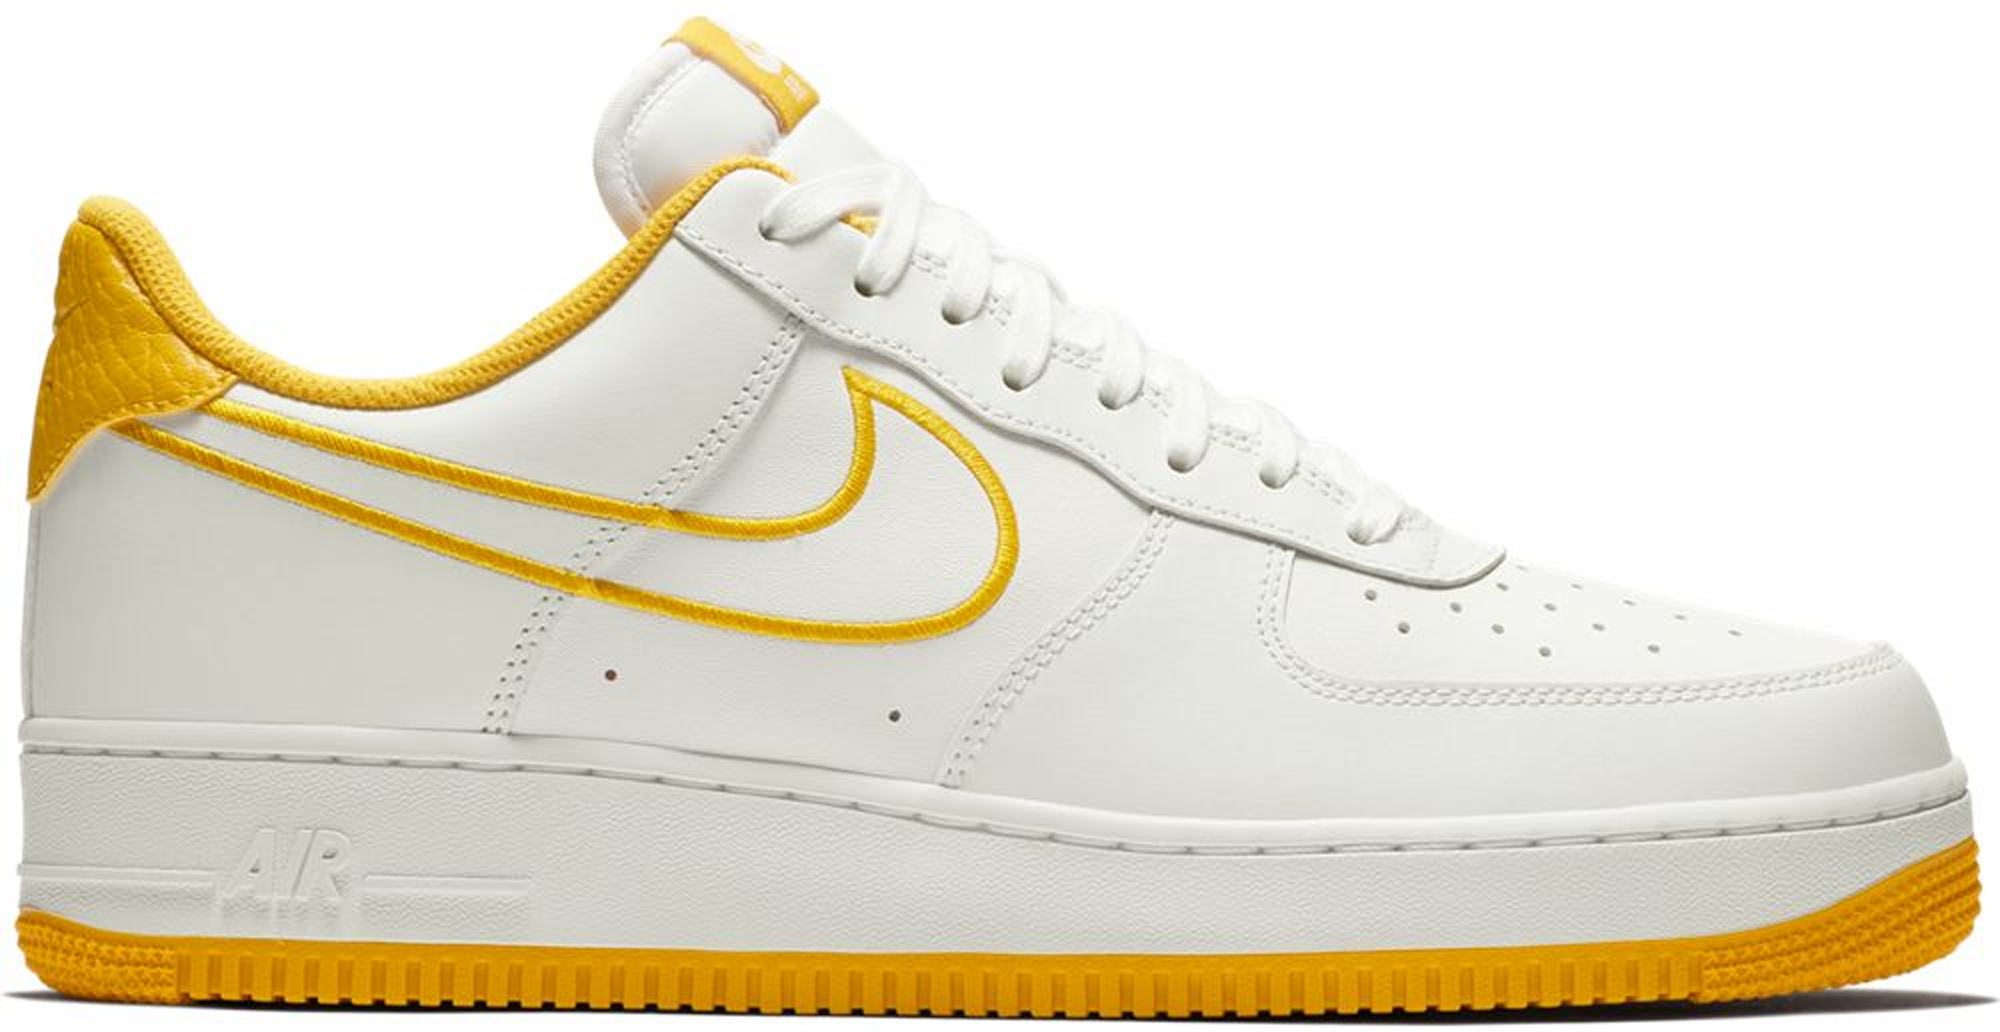 Nike Air Force 1 Low White Yellow Ochre